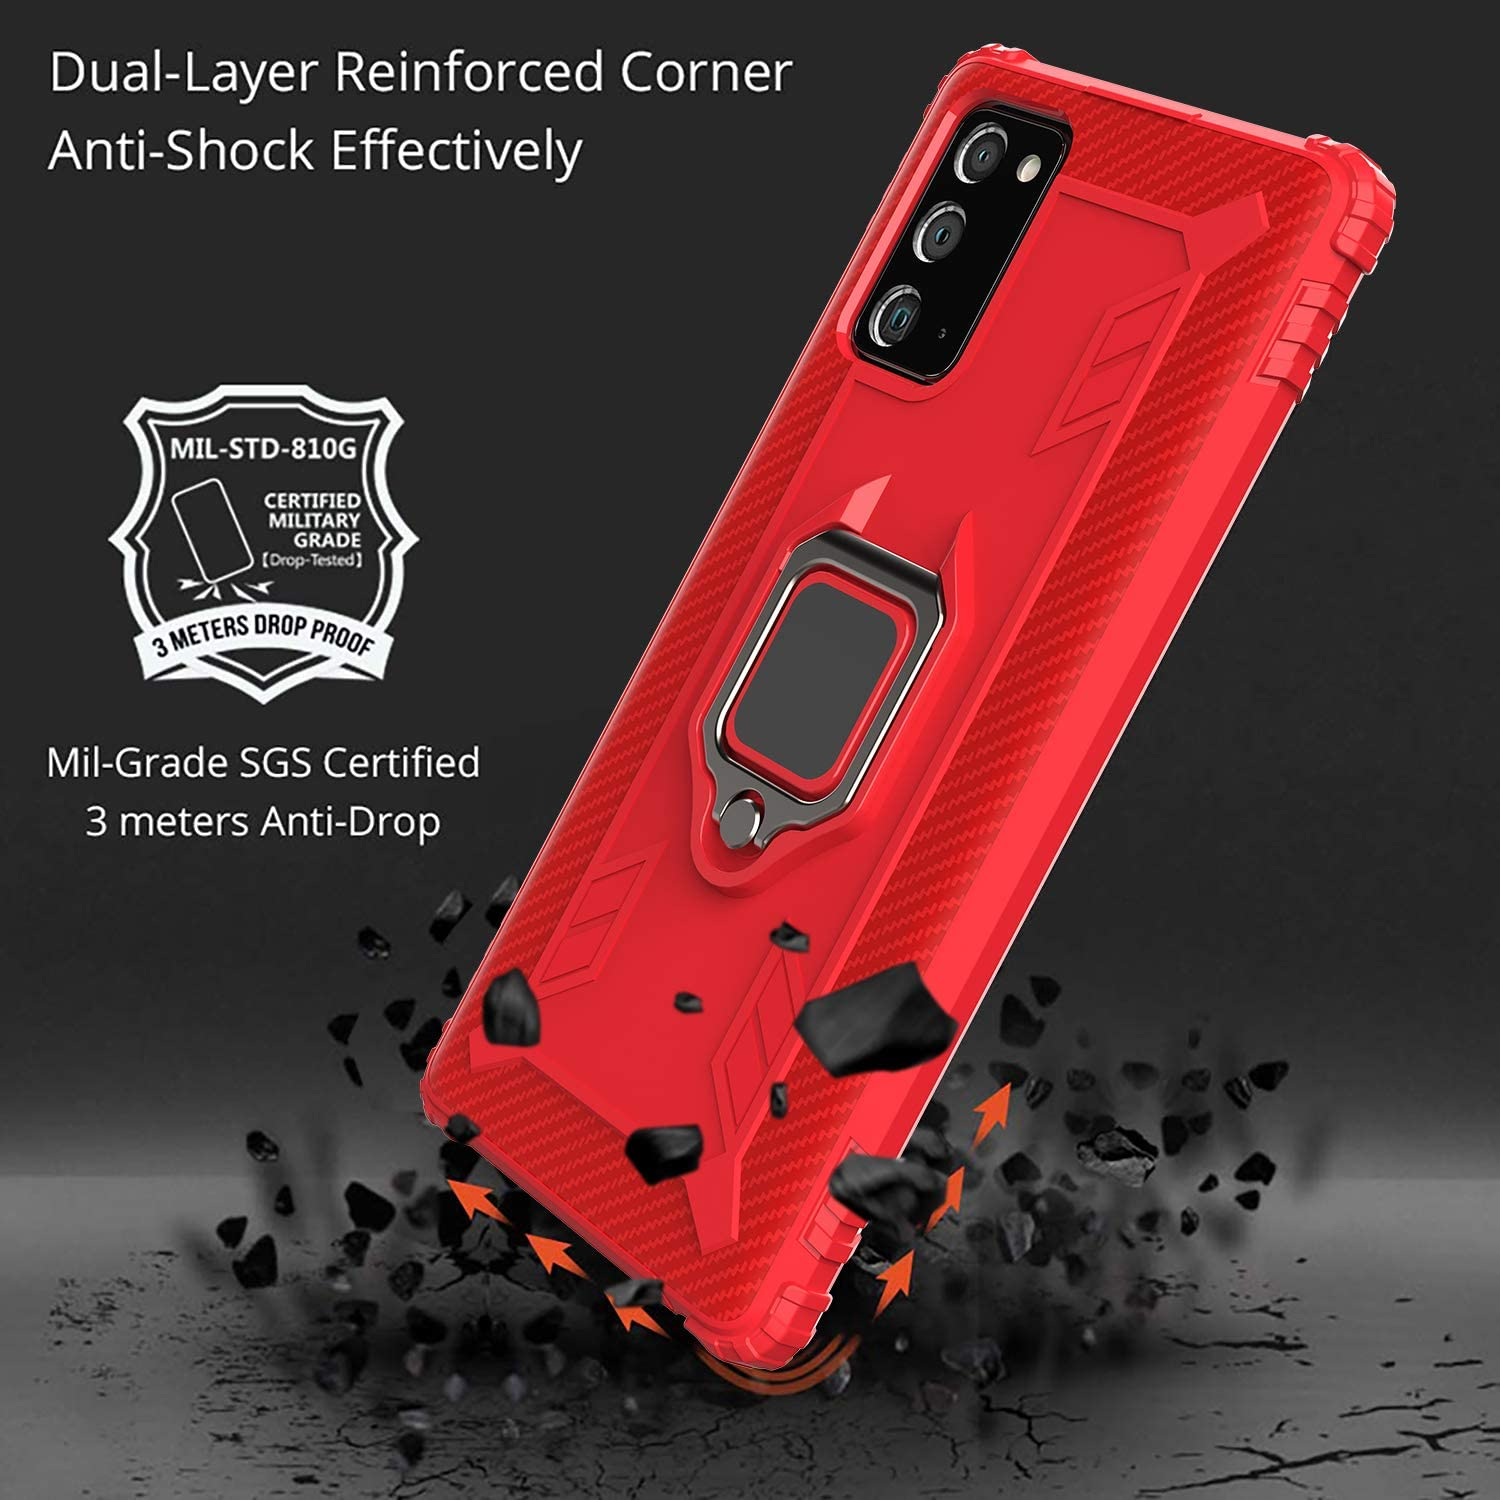 Rugged Armor Protective Cases Red TPU Silicone Cover with 360/° Kickstand Fan Edition Shockproof Bumper Shell TANYO Phone Case for Samsung Galaxy S20 FE